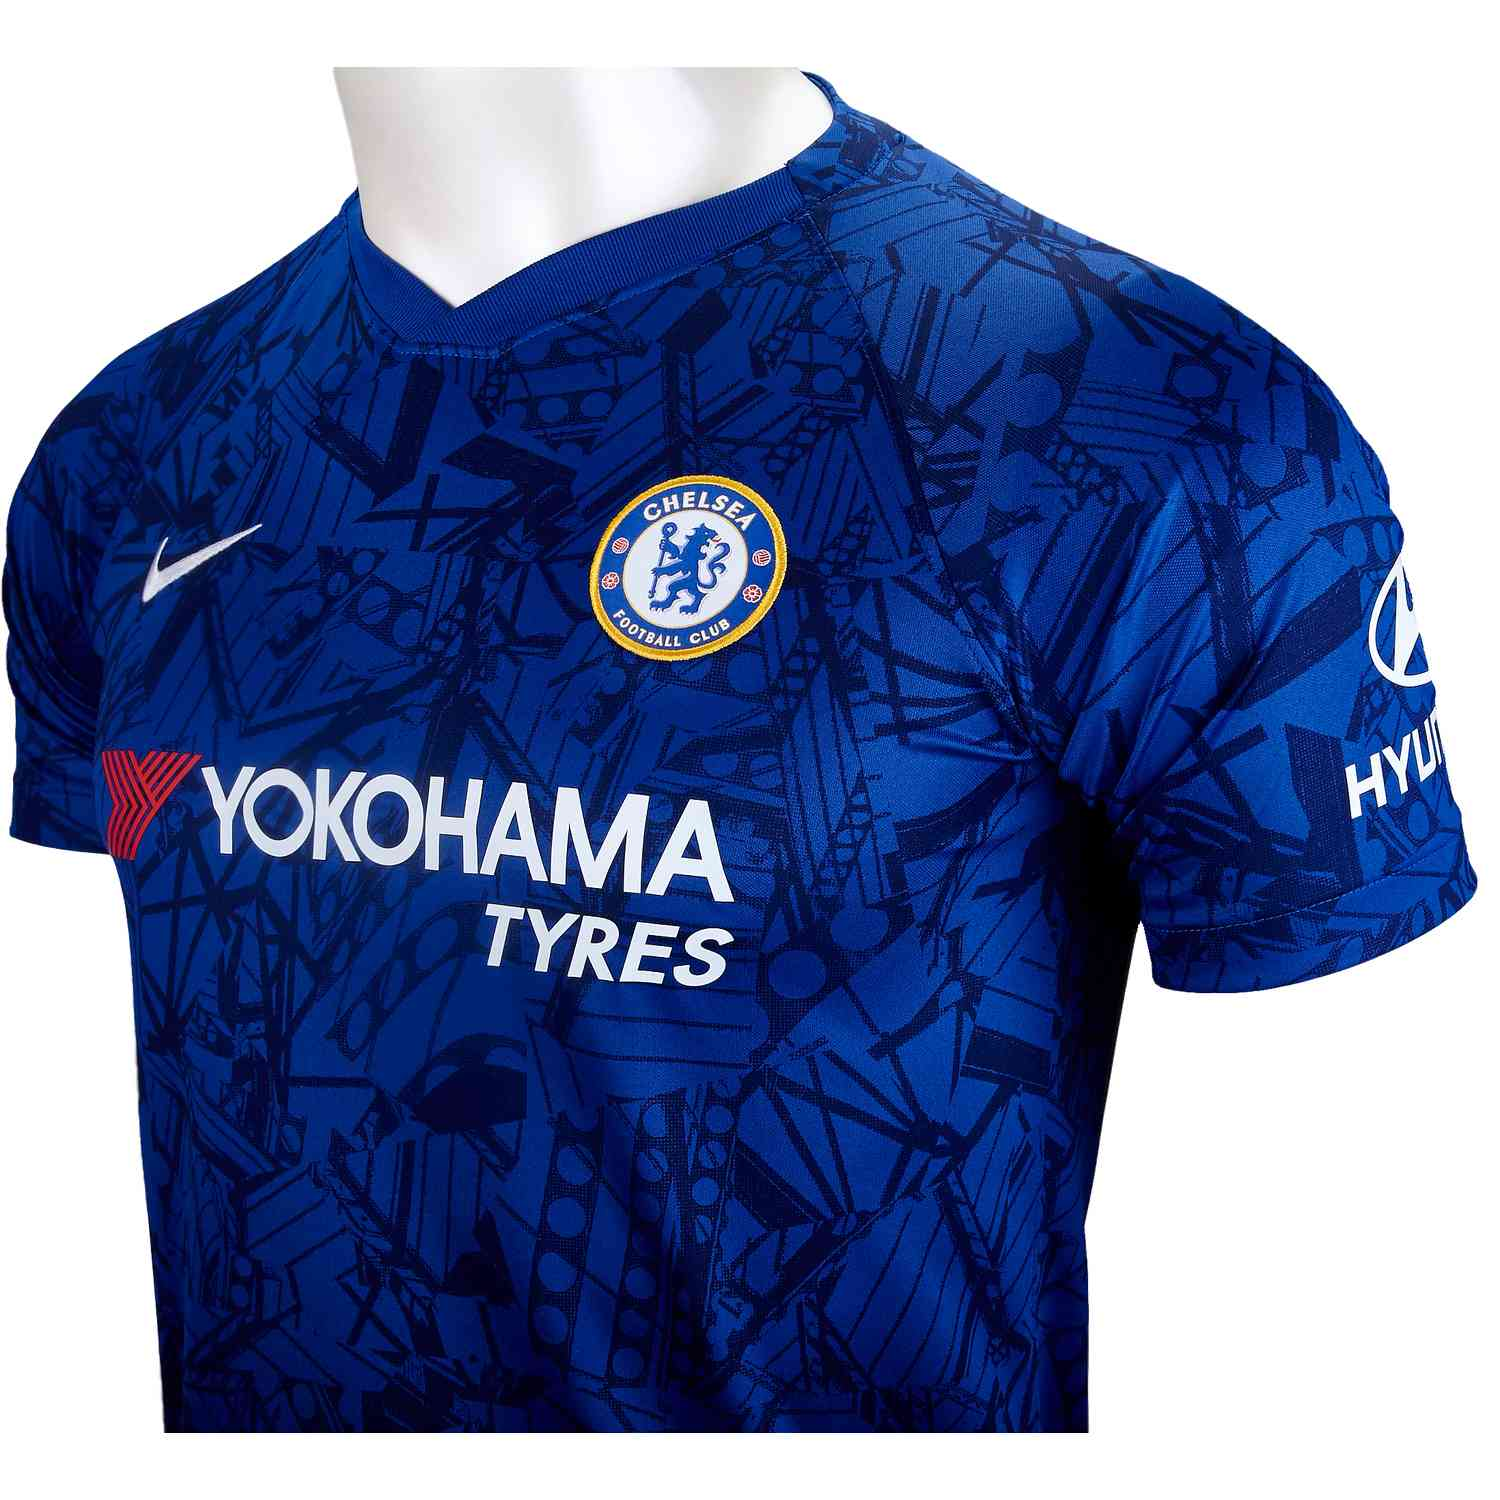 new style 3e749 7c769 2019/20 Kids Nike Chelsea Home Jersey - Soccer Master